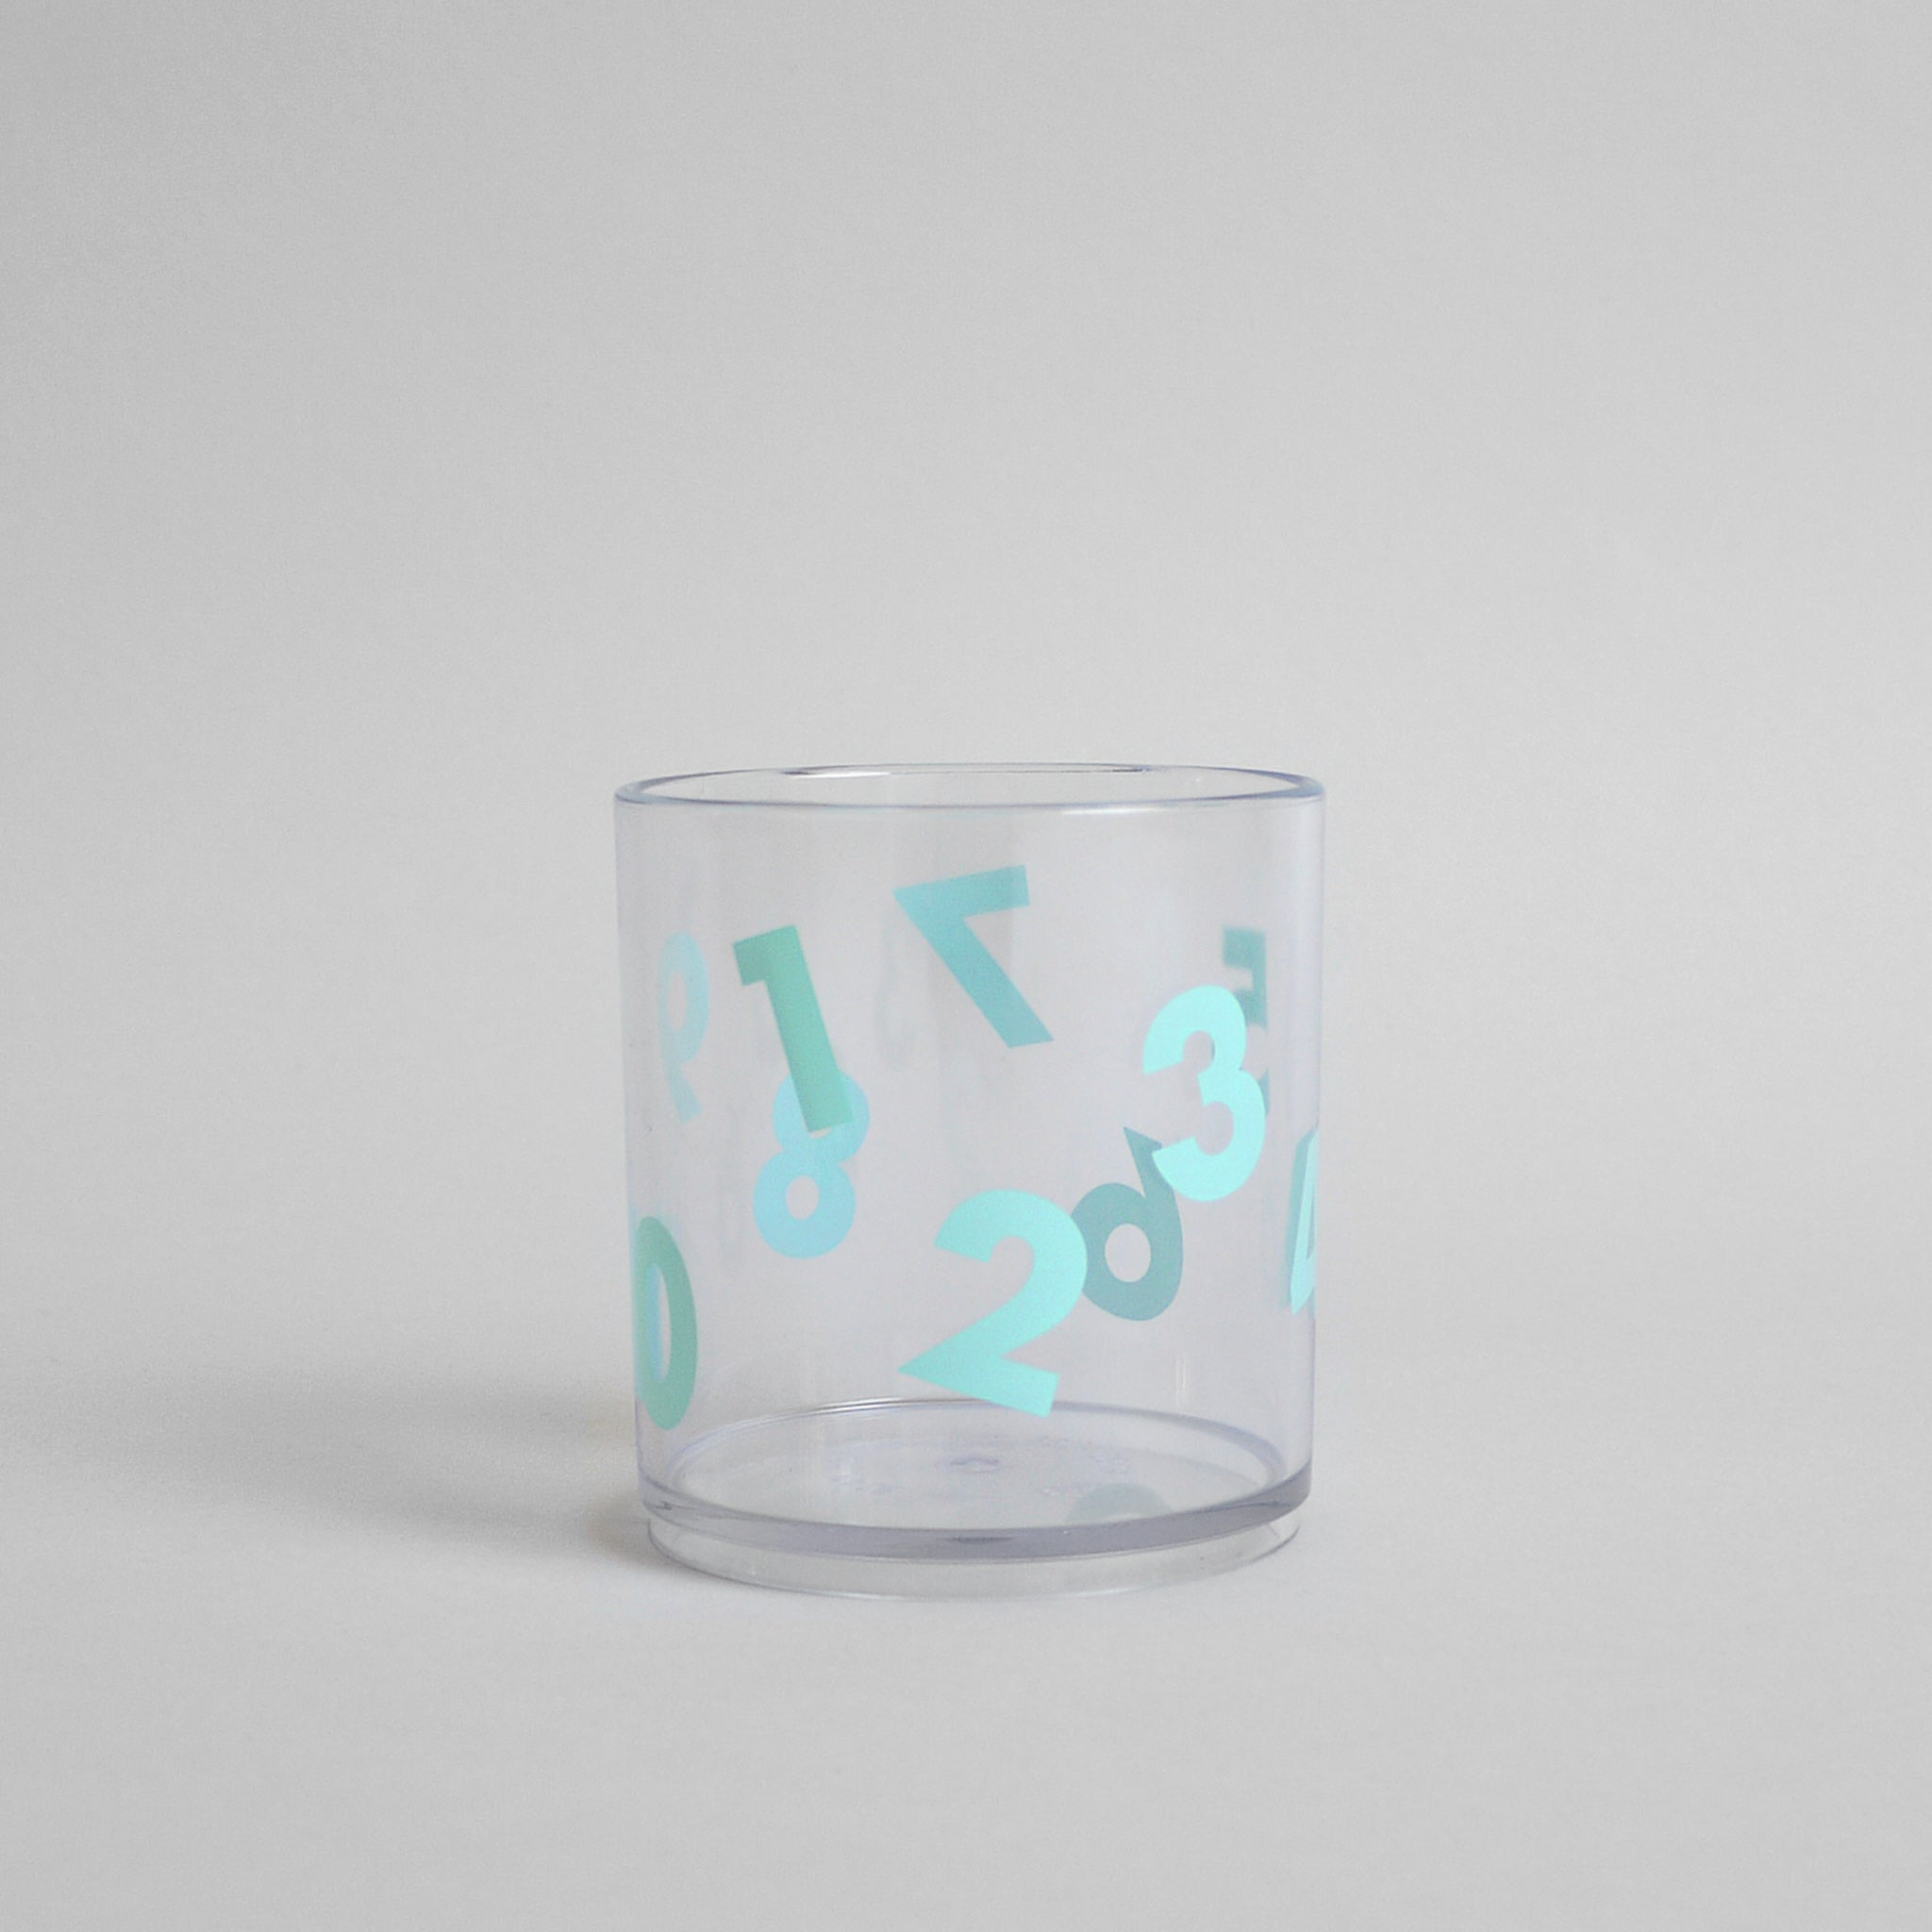 Buddy & Bear - Number Cup (Mint - Clear Edition)